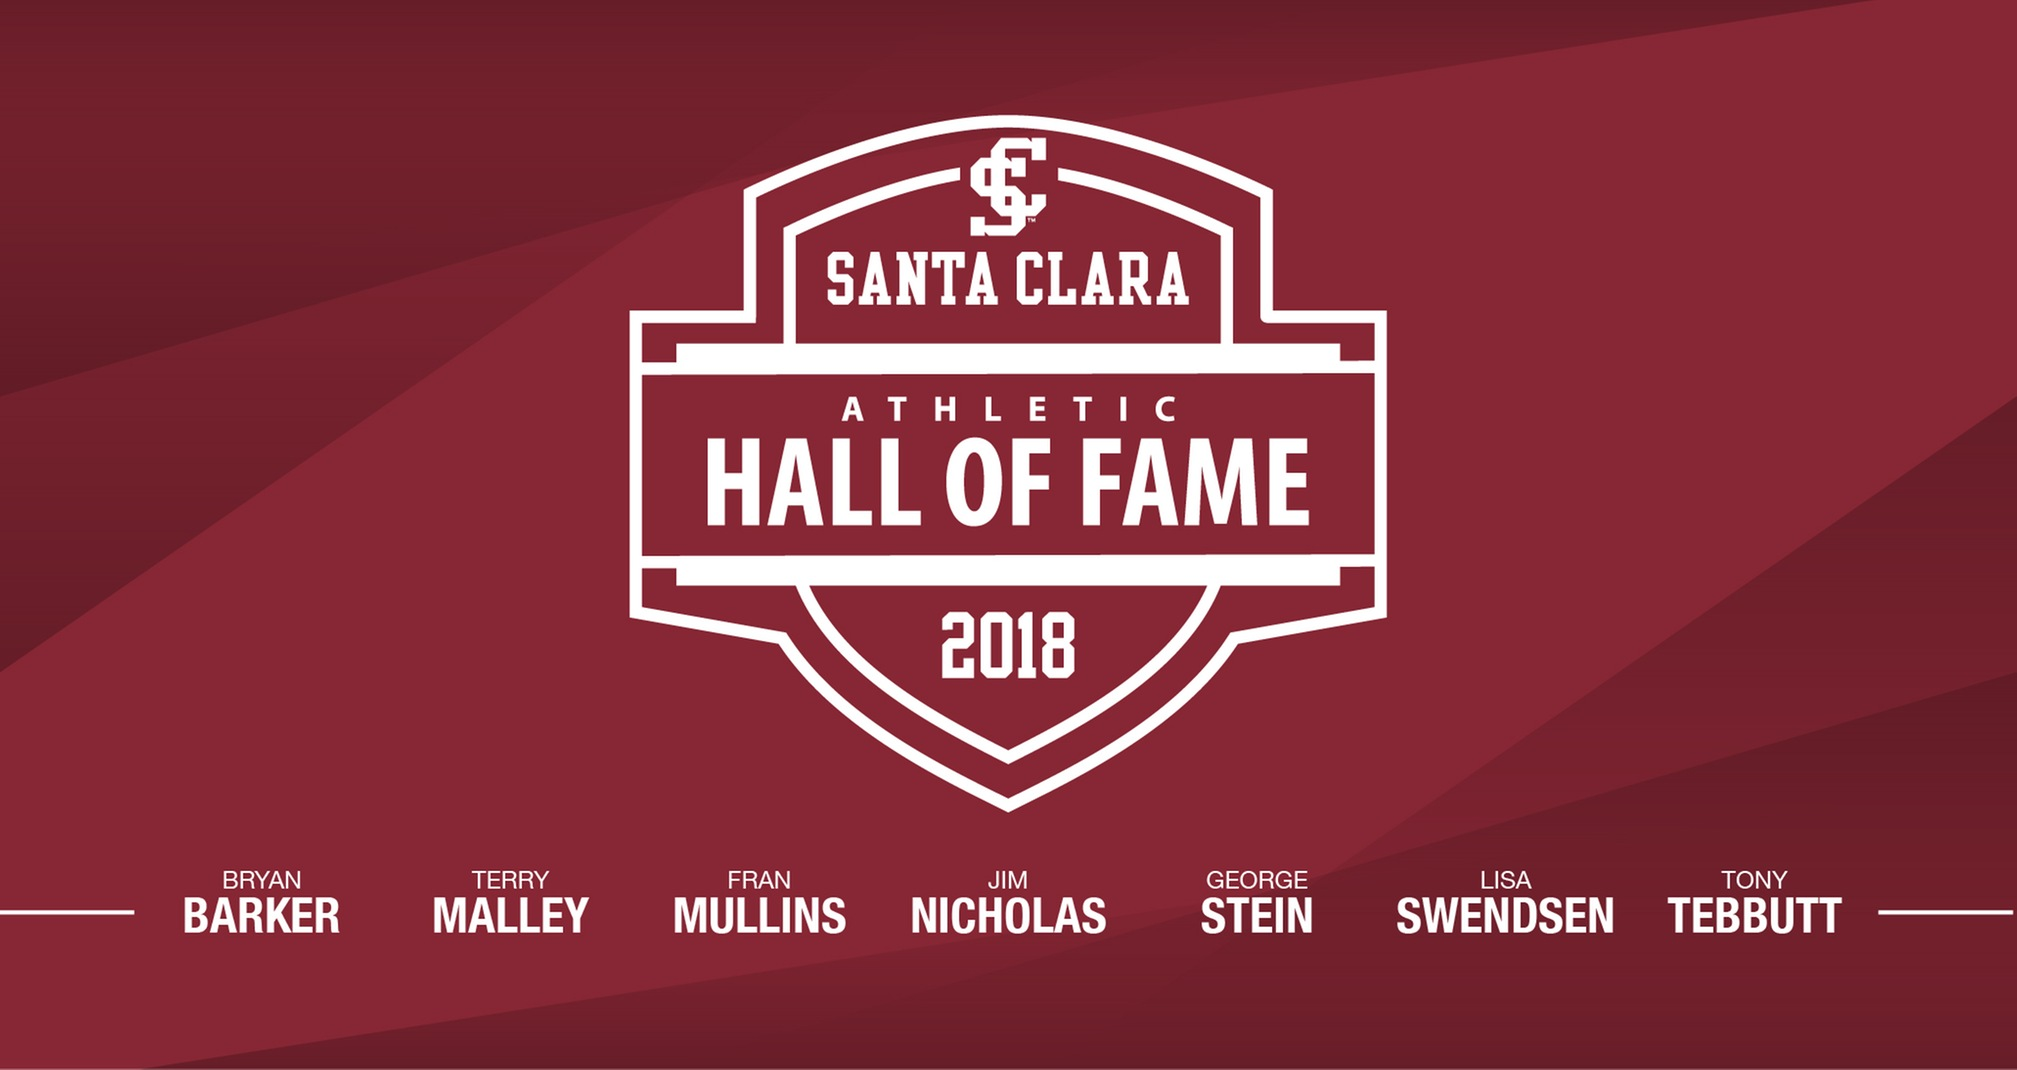 Red and White Celebration Features 2018 Hall of Fame Induction